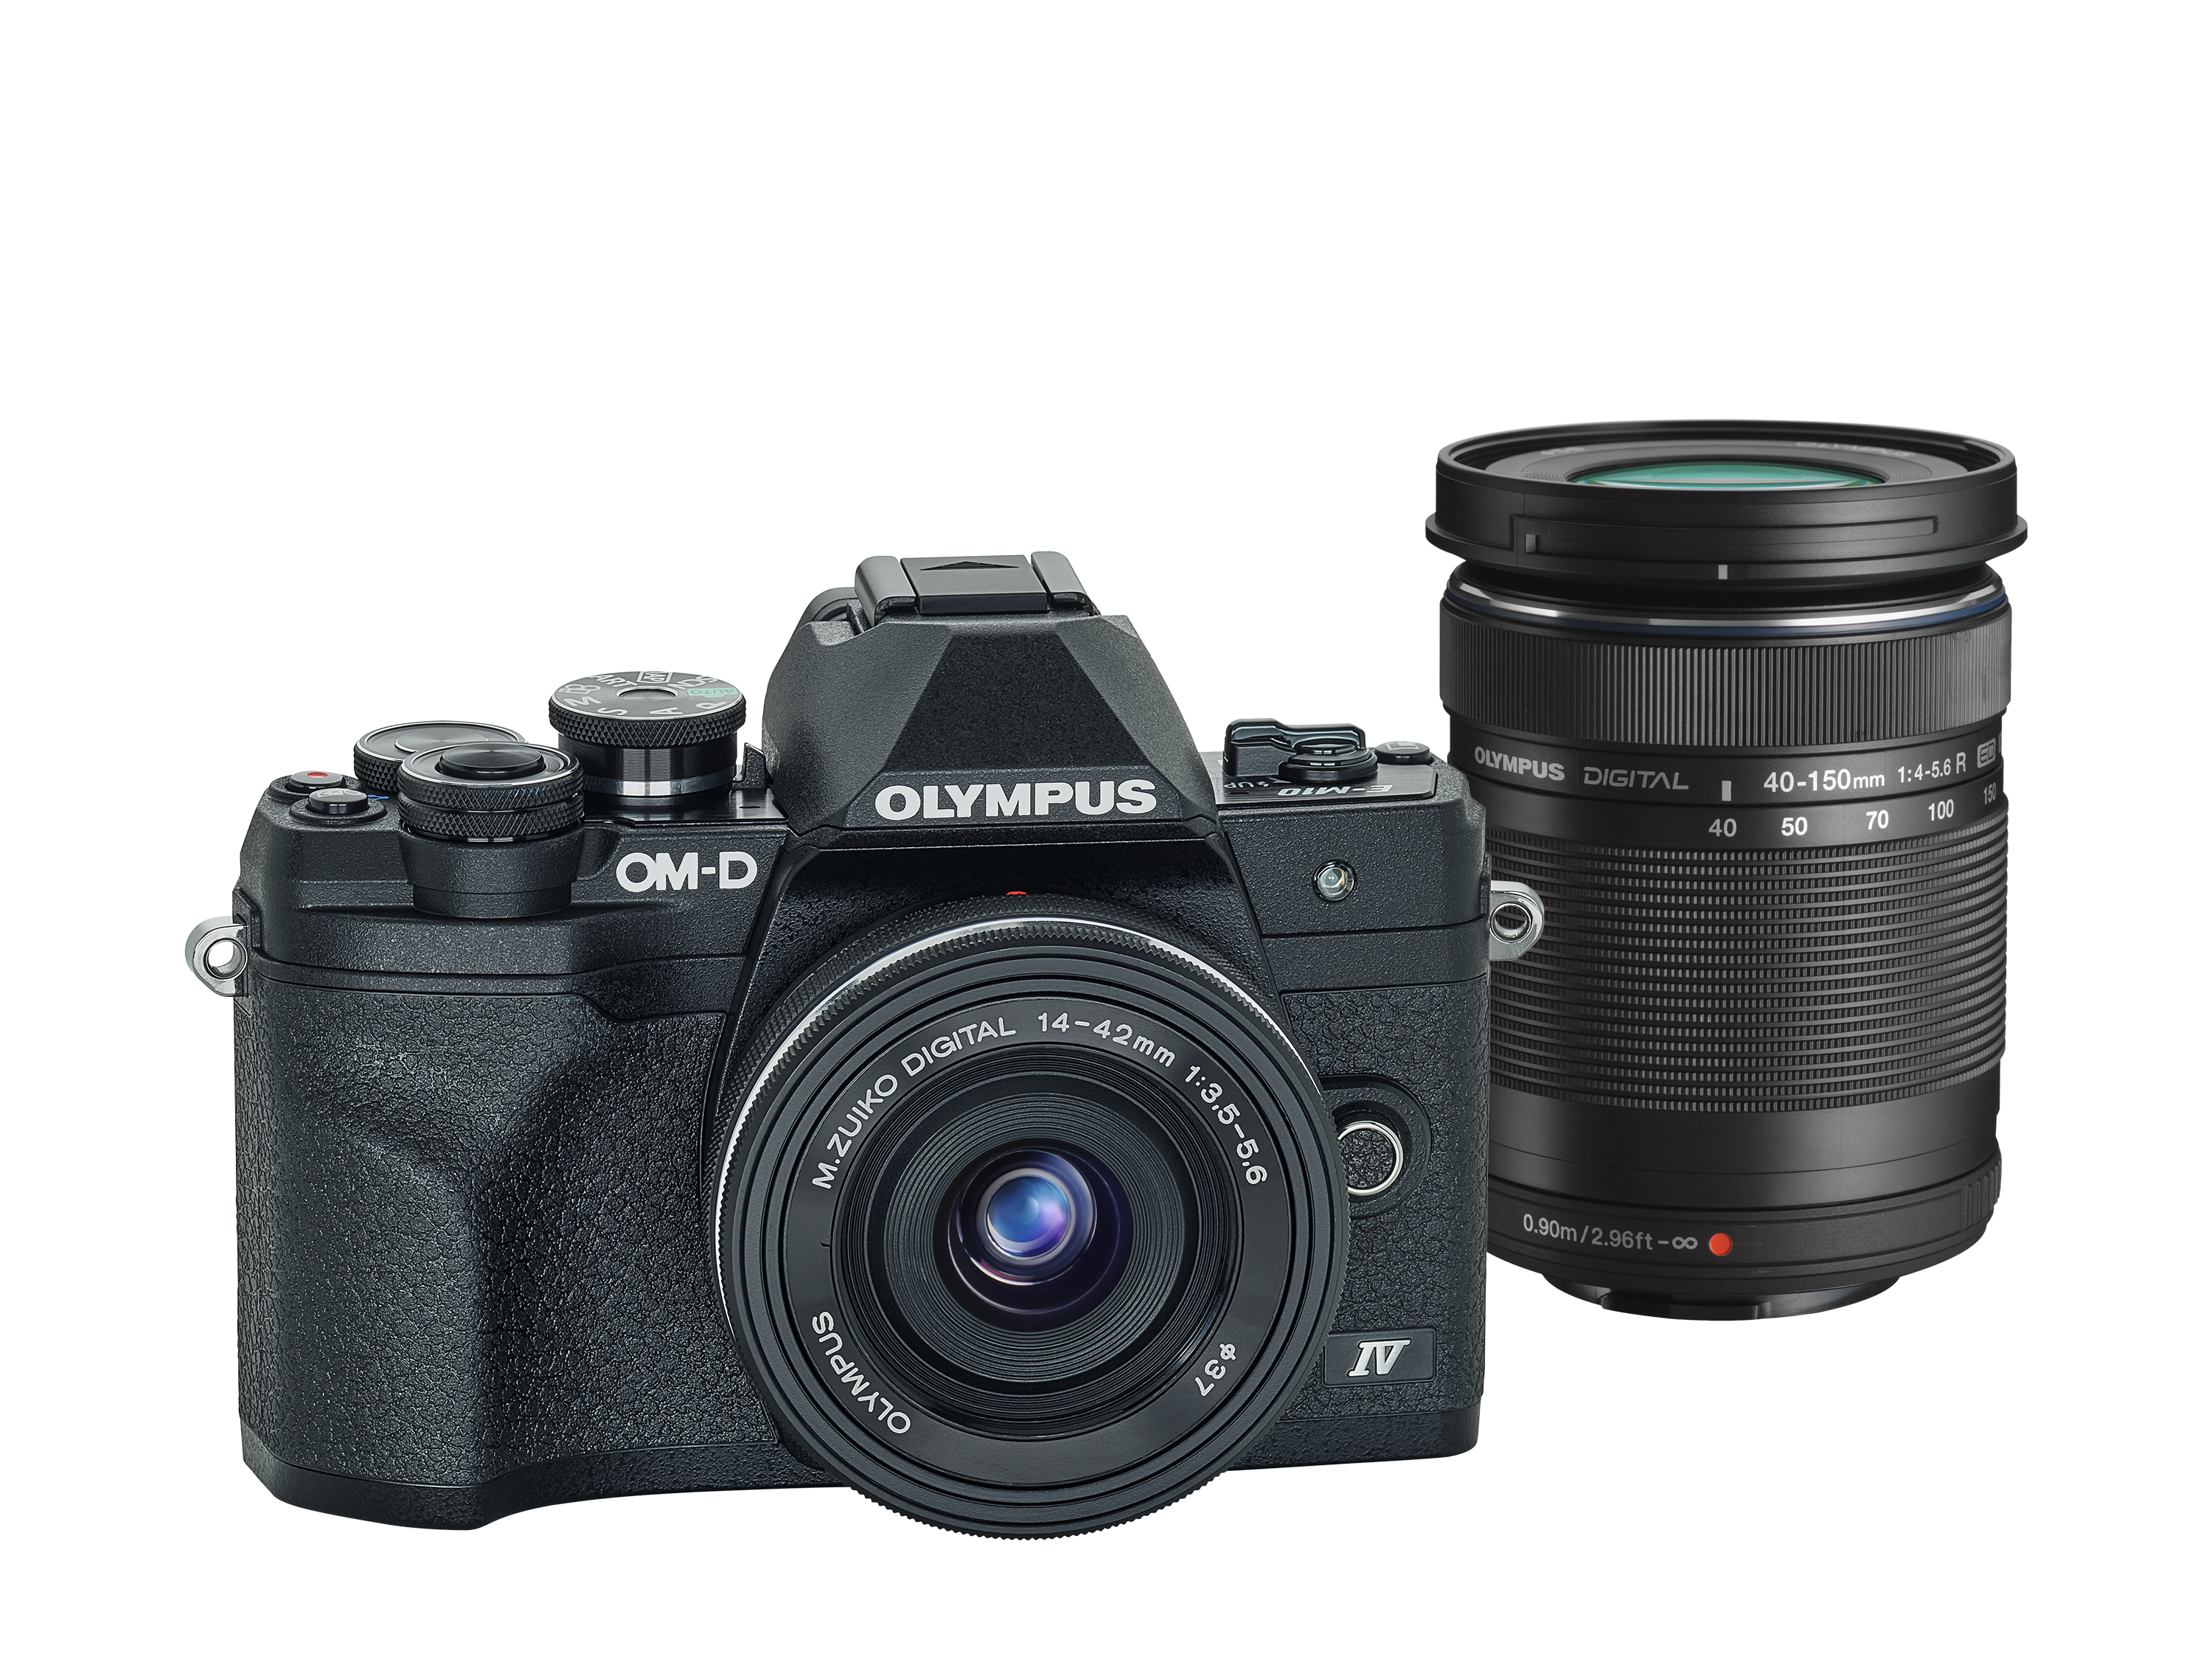 Фотоаппарат Olympus OM-D E-M10 Mark IV Pancake Double Zoom Kit с объективами 14-42 EZ и 40-150mm черный (V207134BE000) фото